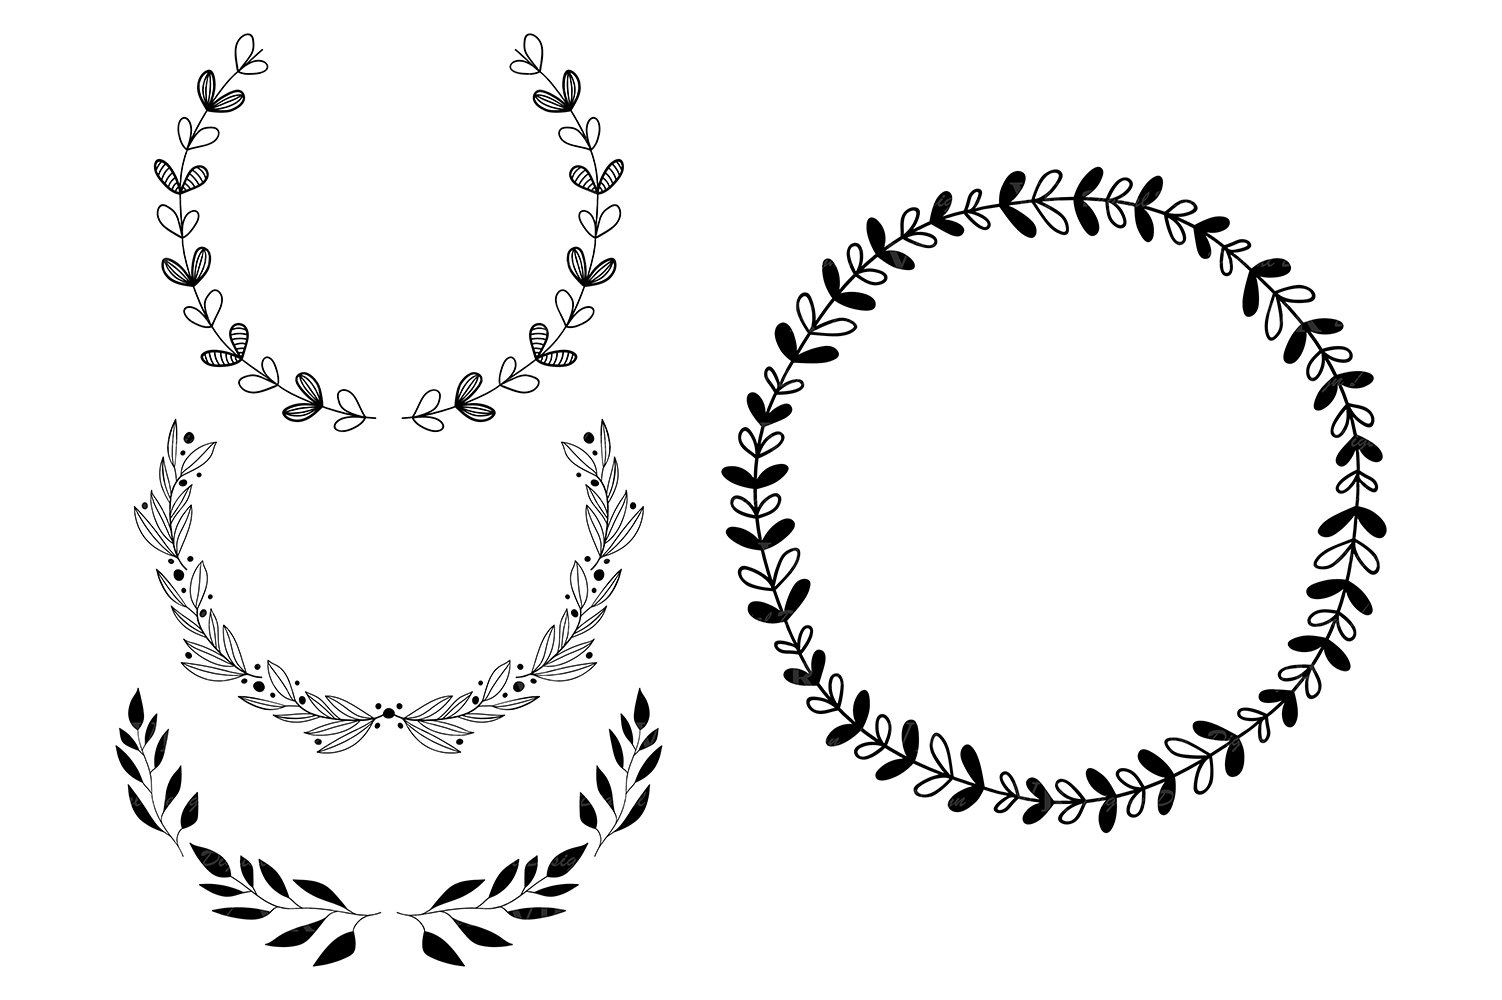 Wreaths Clipart, Hand drawn black design elements, Digital wreath, laurels, leaves and branches, Wedding clipart, Vector example image 4